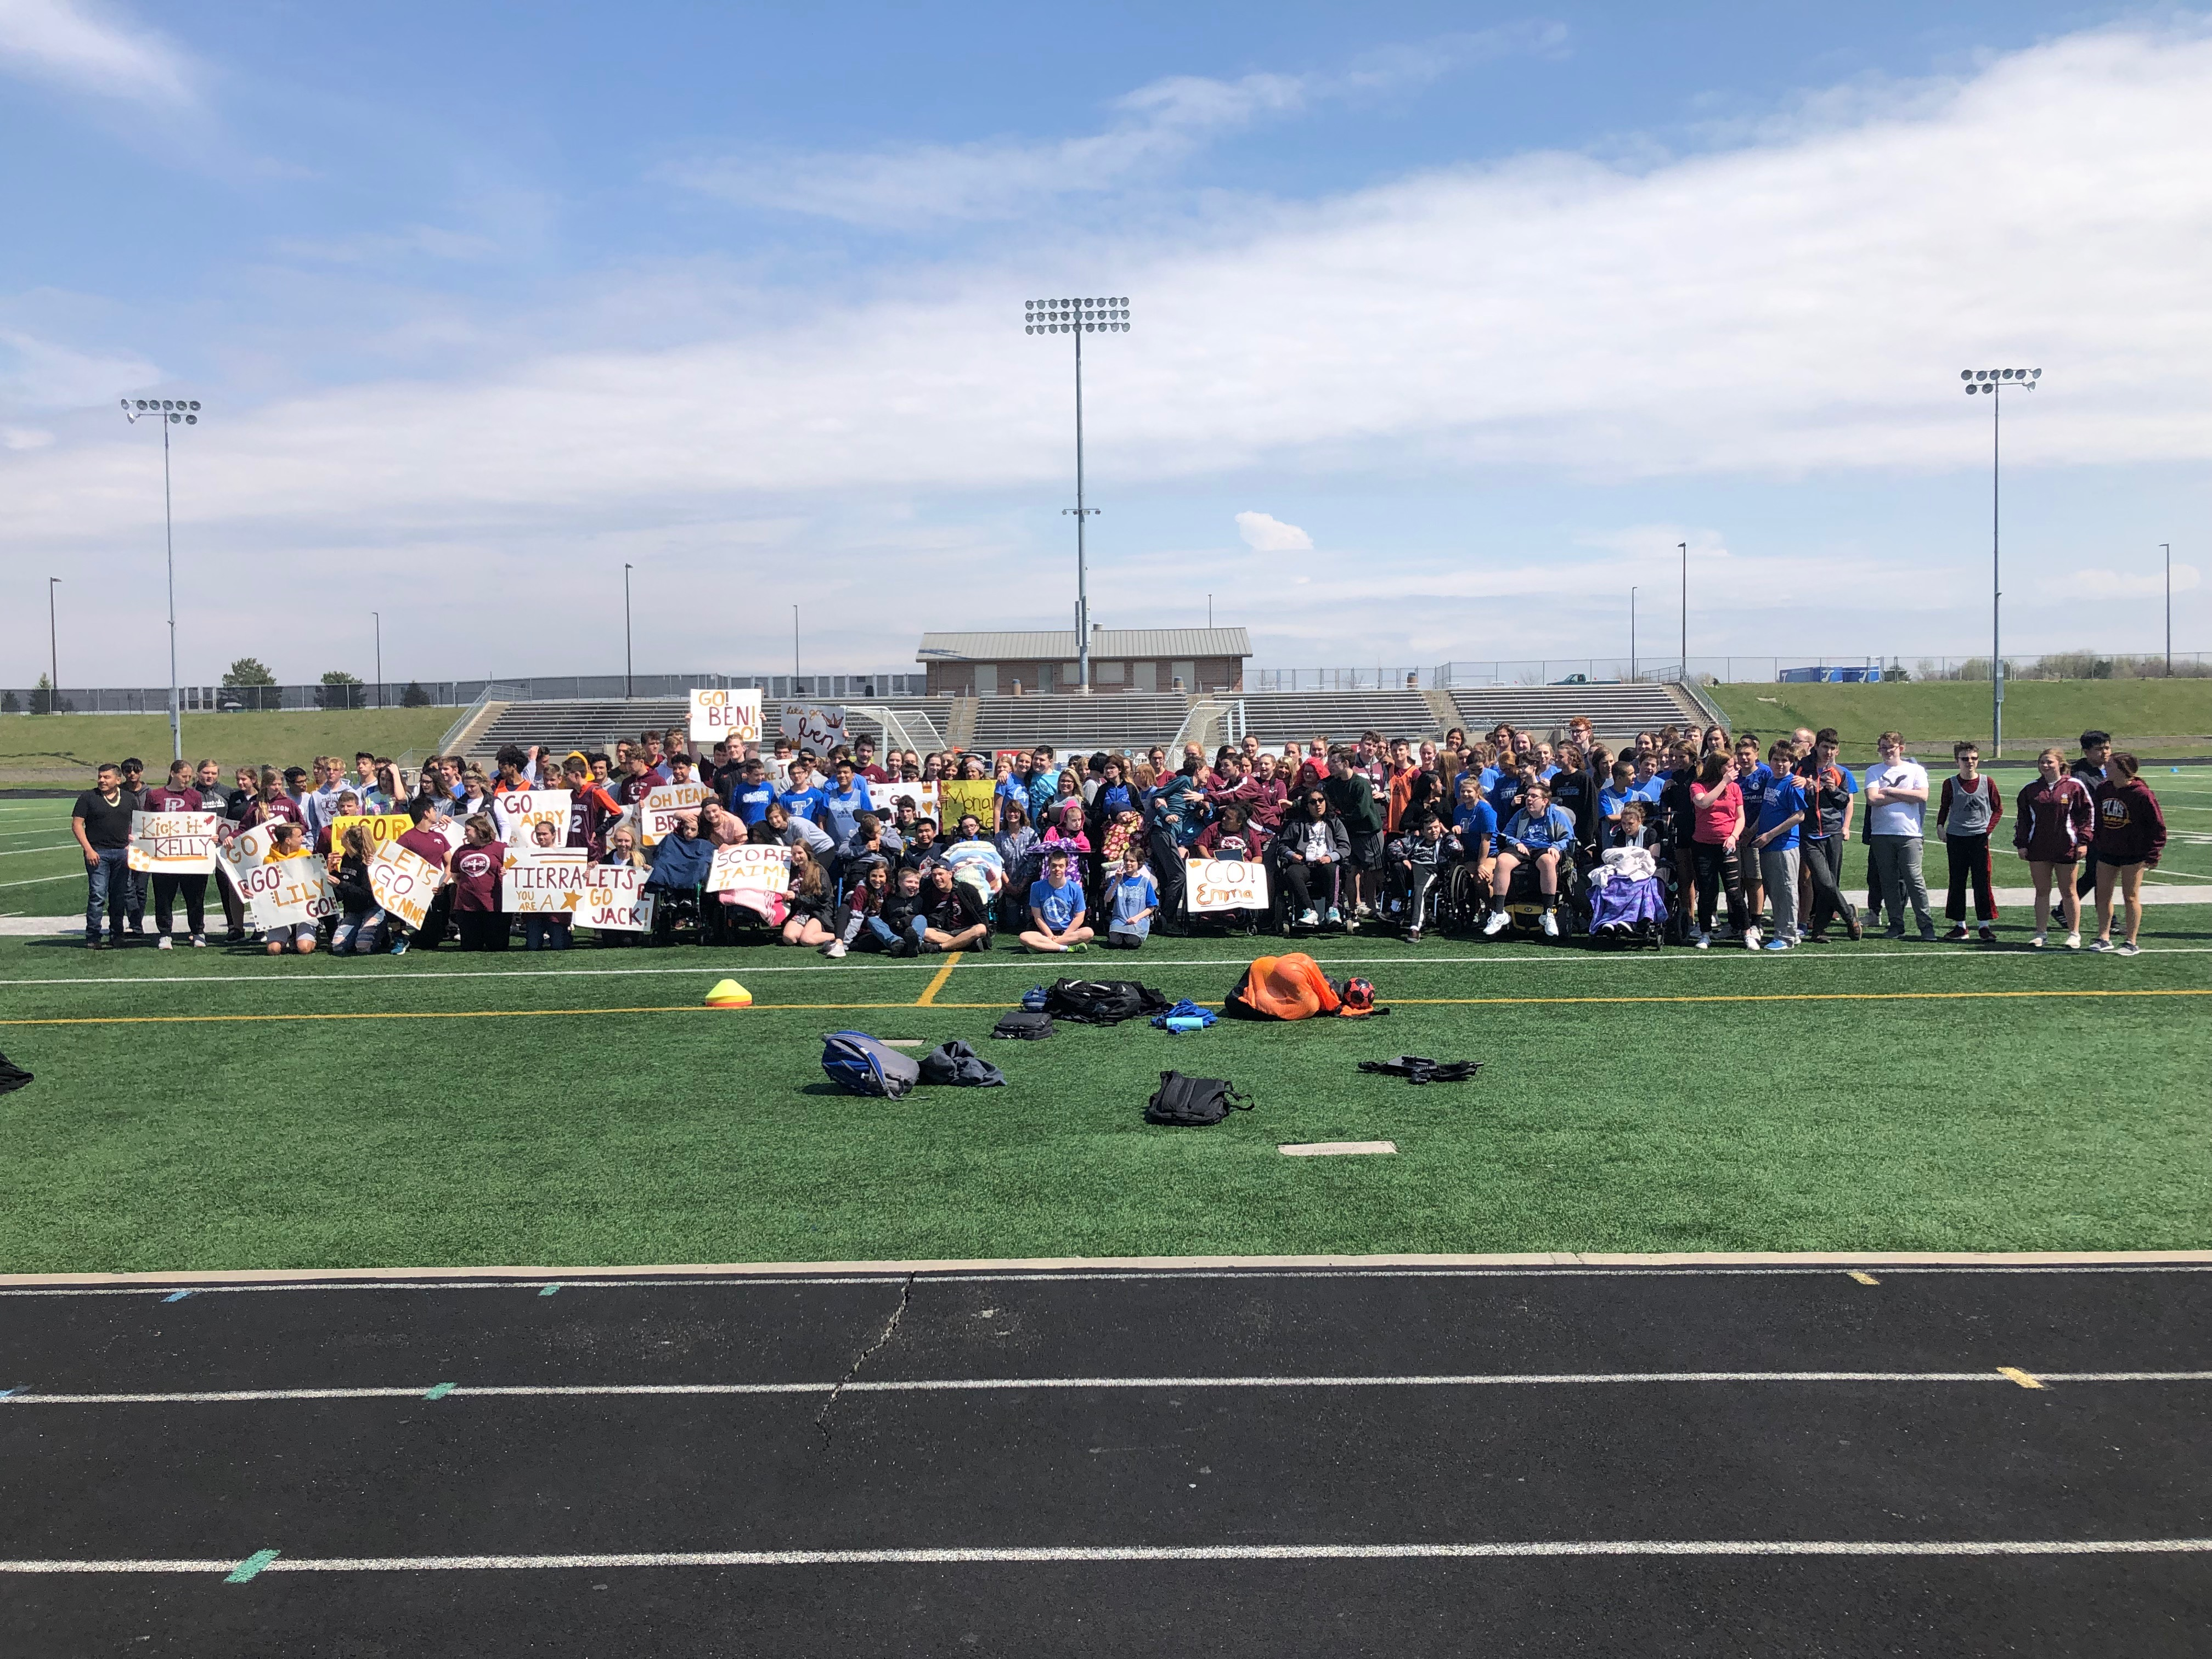 Unified Soccer teams all pose together